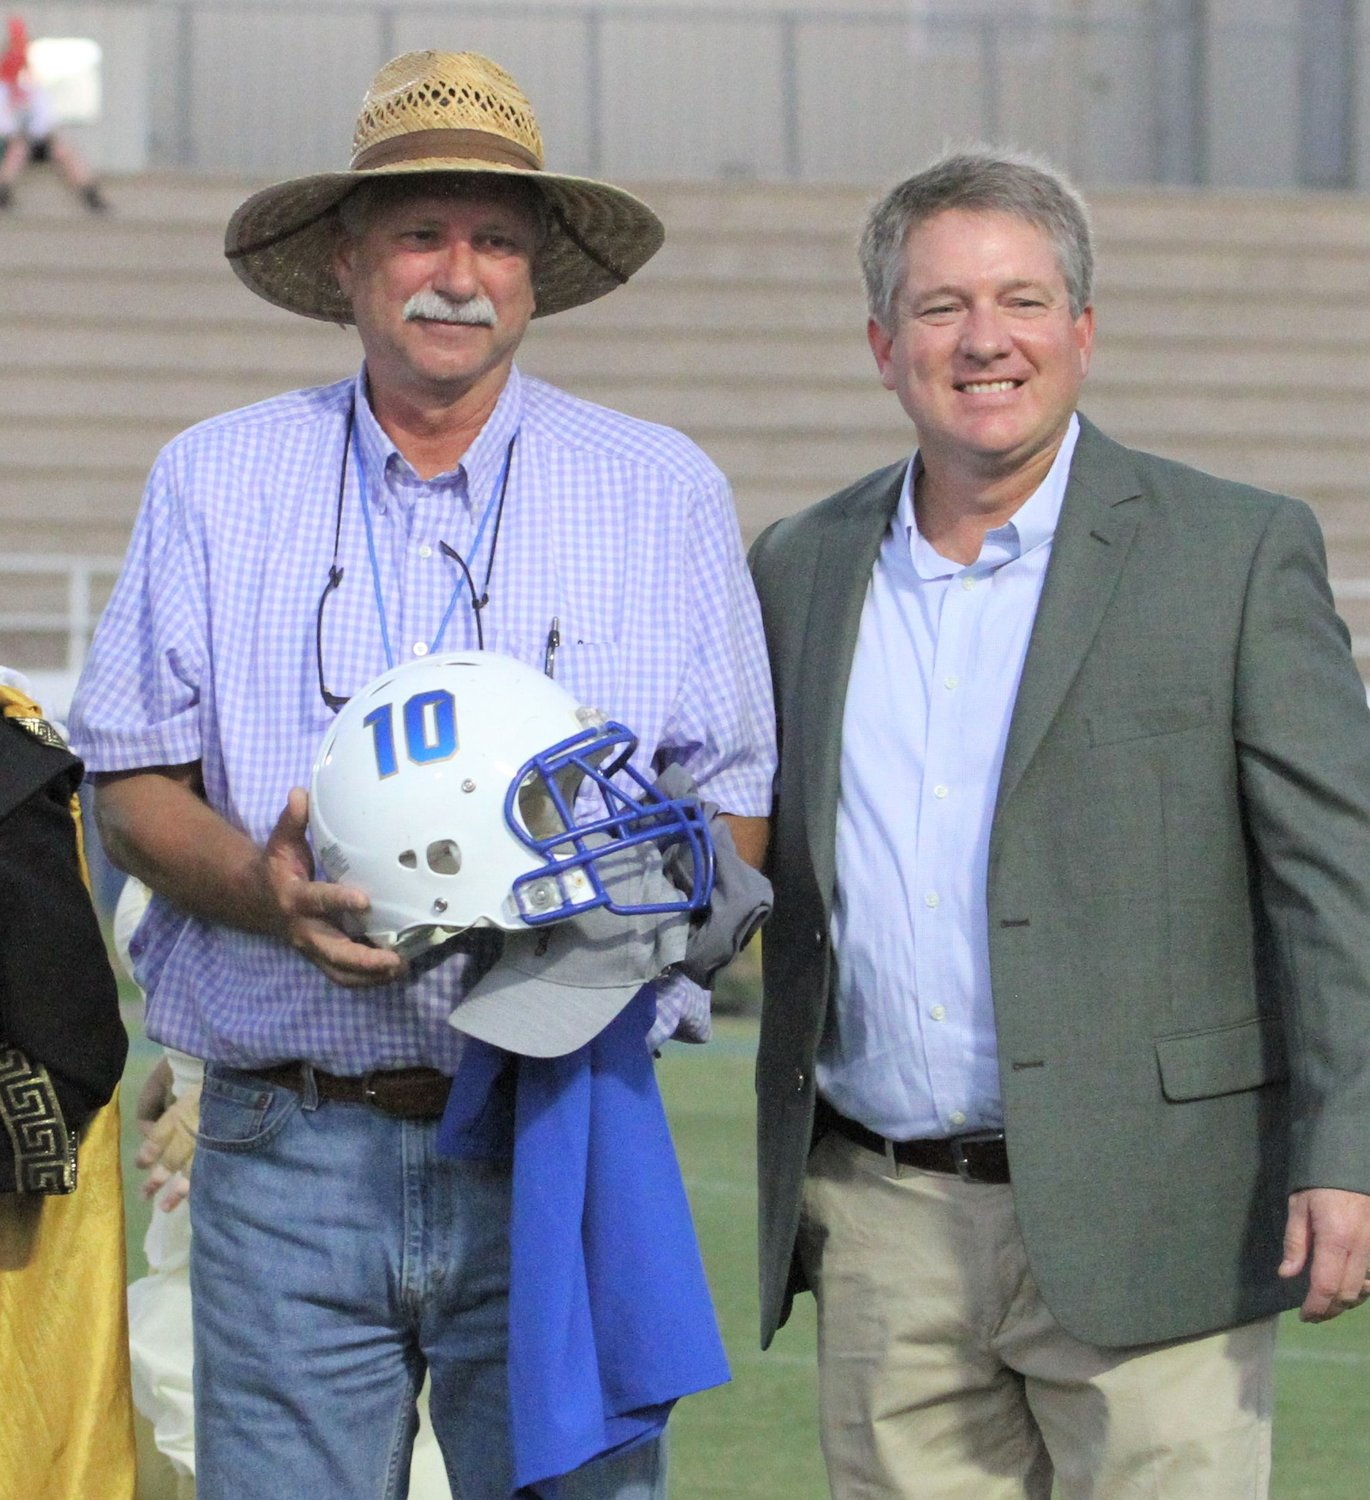 City of Fairhope Parks and Recreation Director Tom Kuhl, left, is retiring. He was recognized at the Fairhope High School football game Sept. 21. Pictured with him is Fairhope High Principal Jon Cardwell.